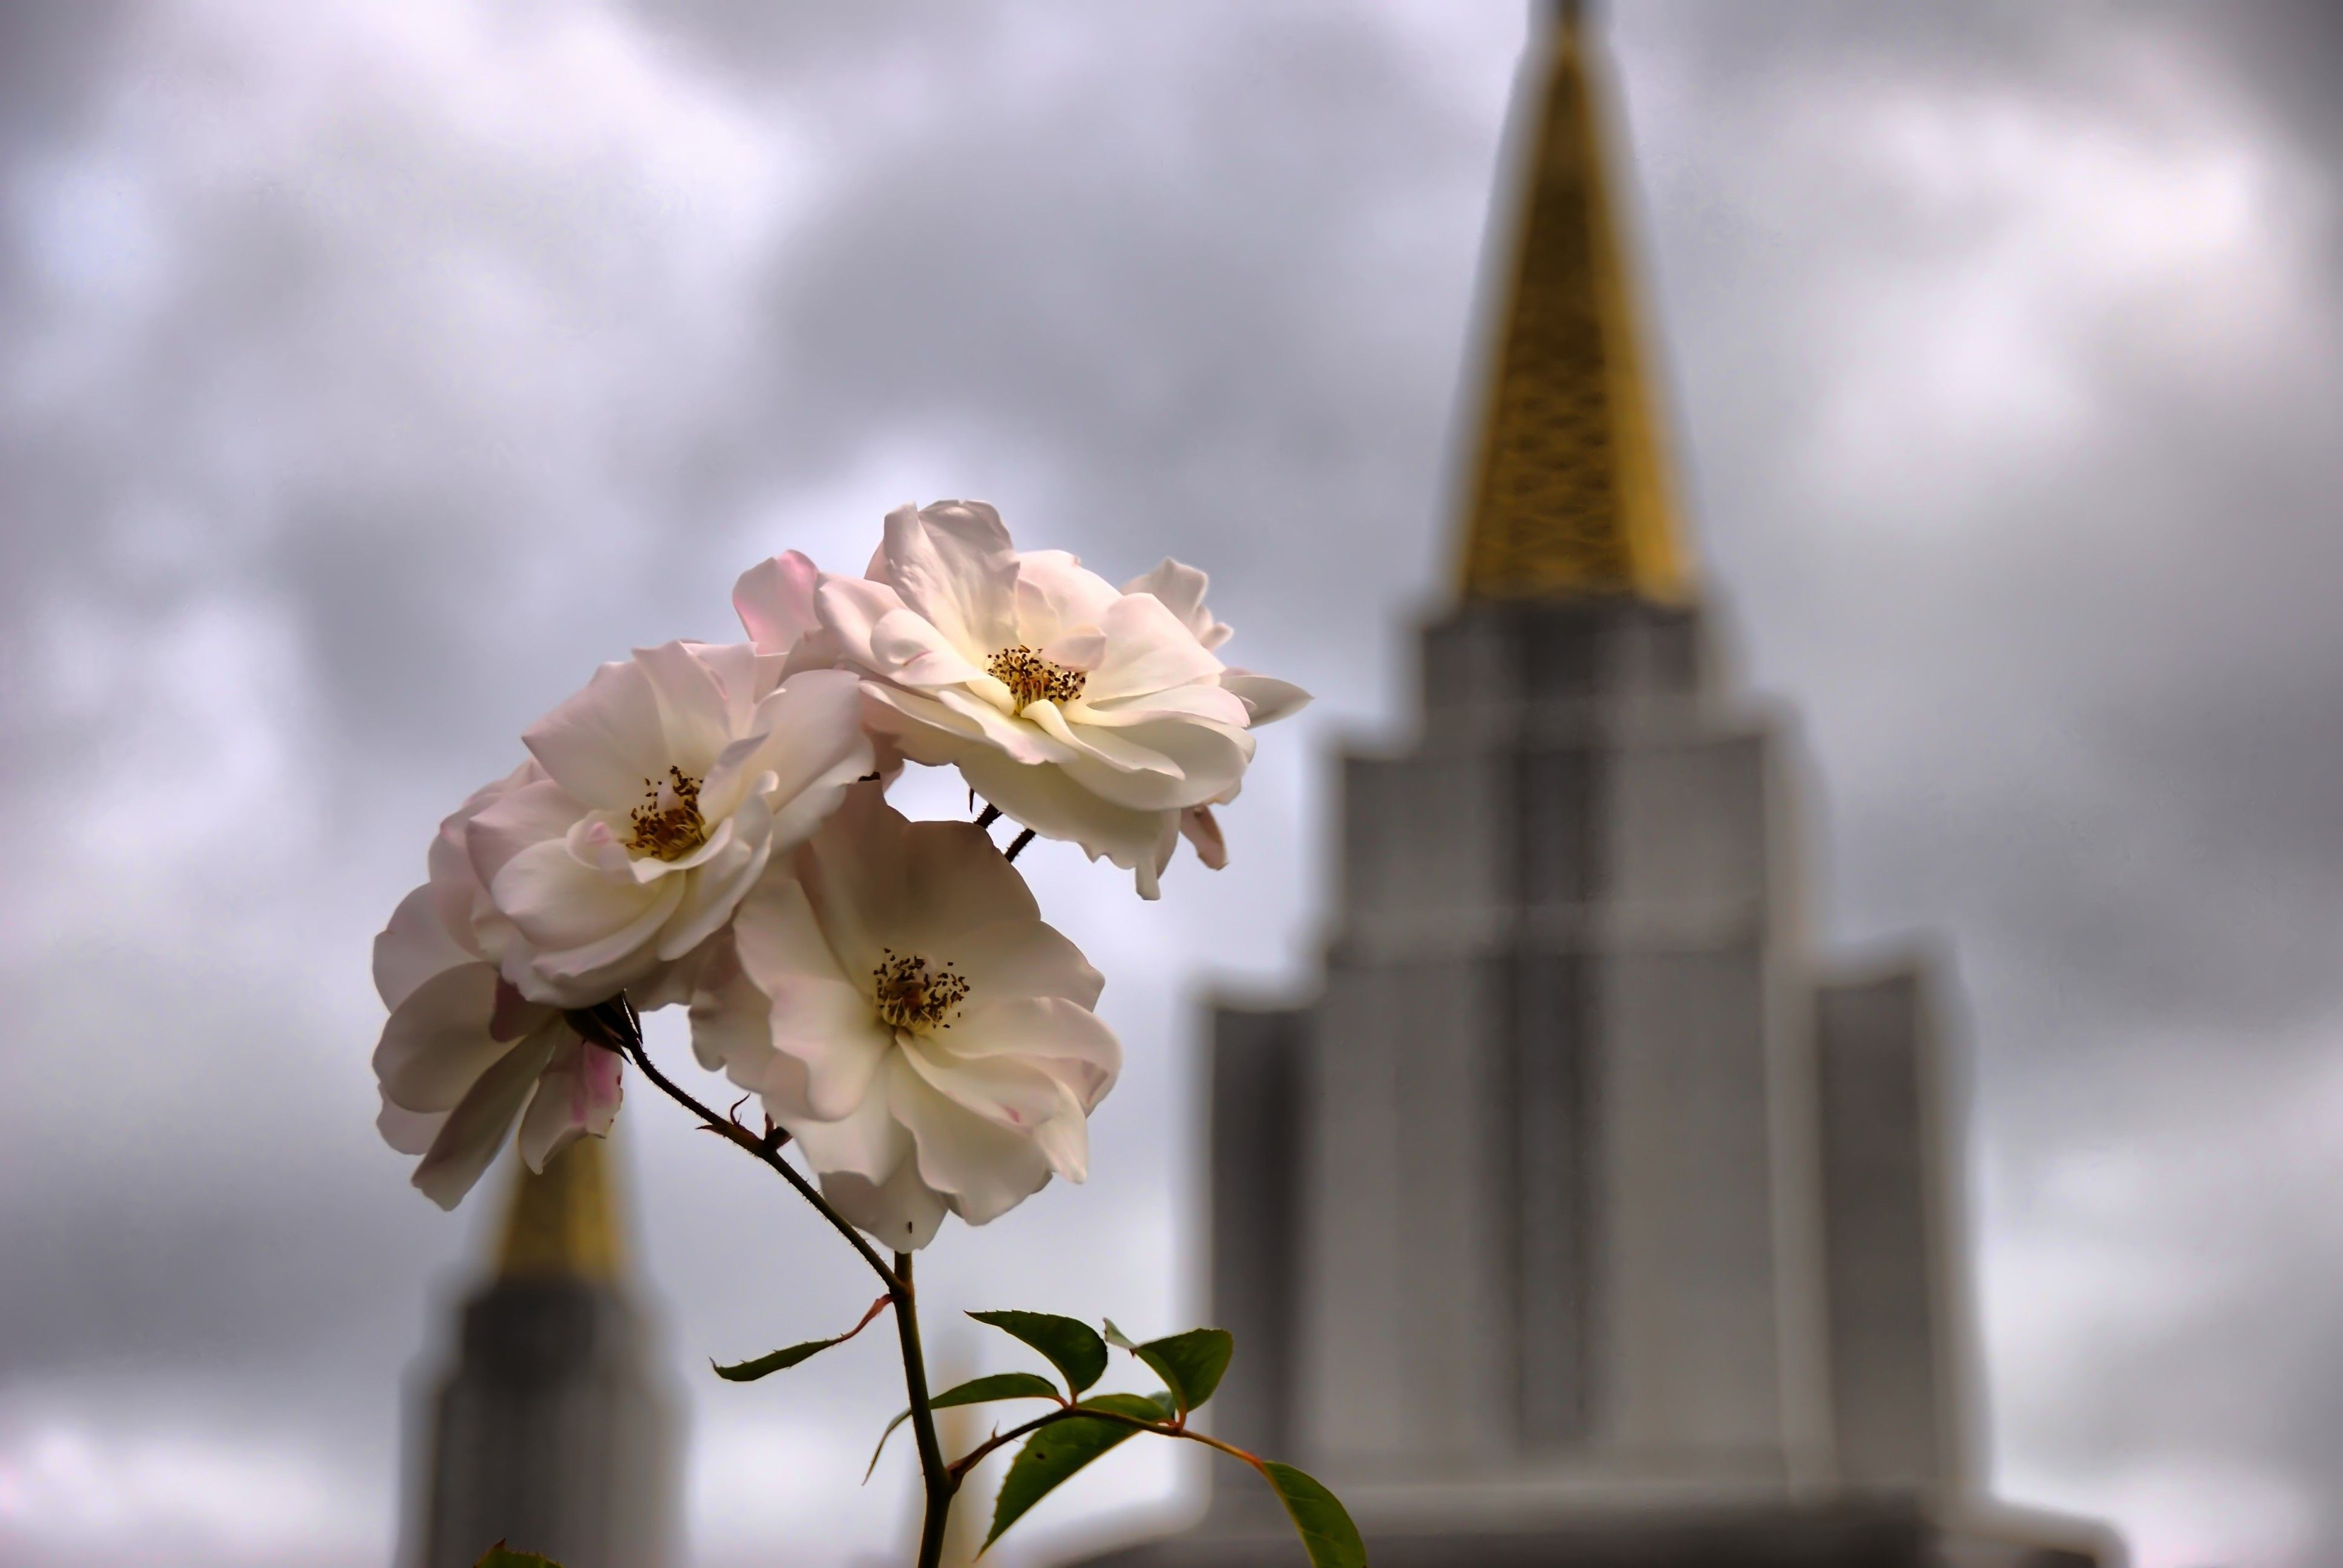 The Oakland California Temple spires, including flowers.